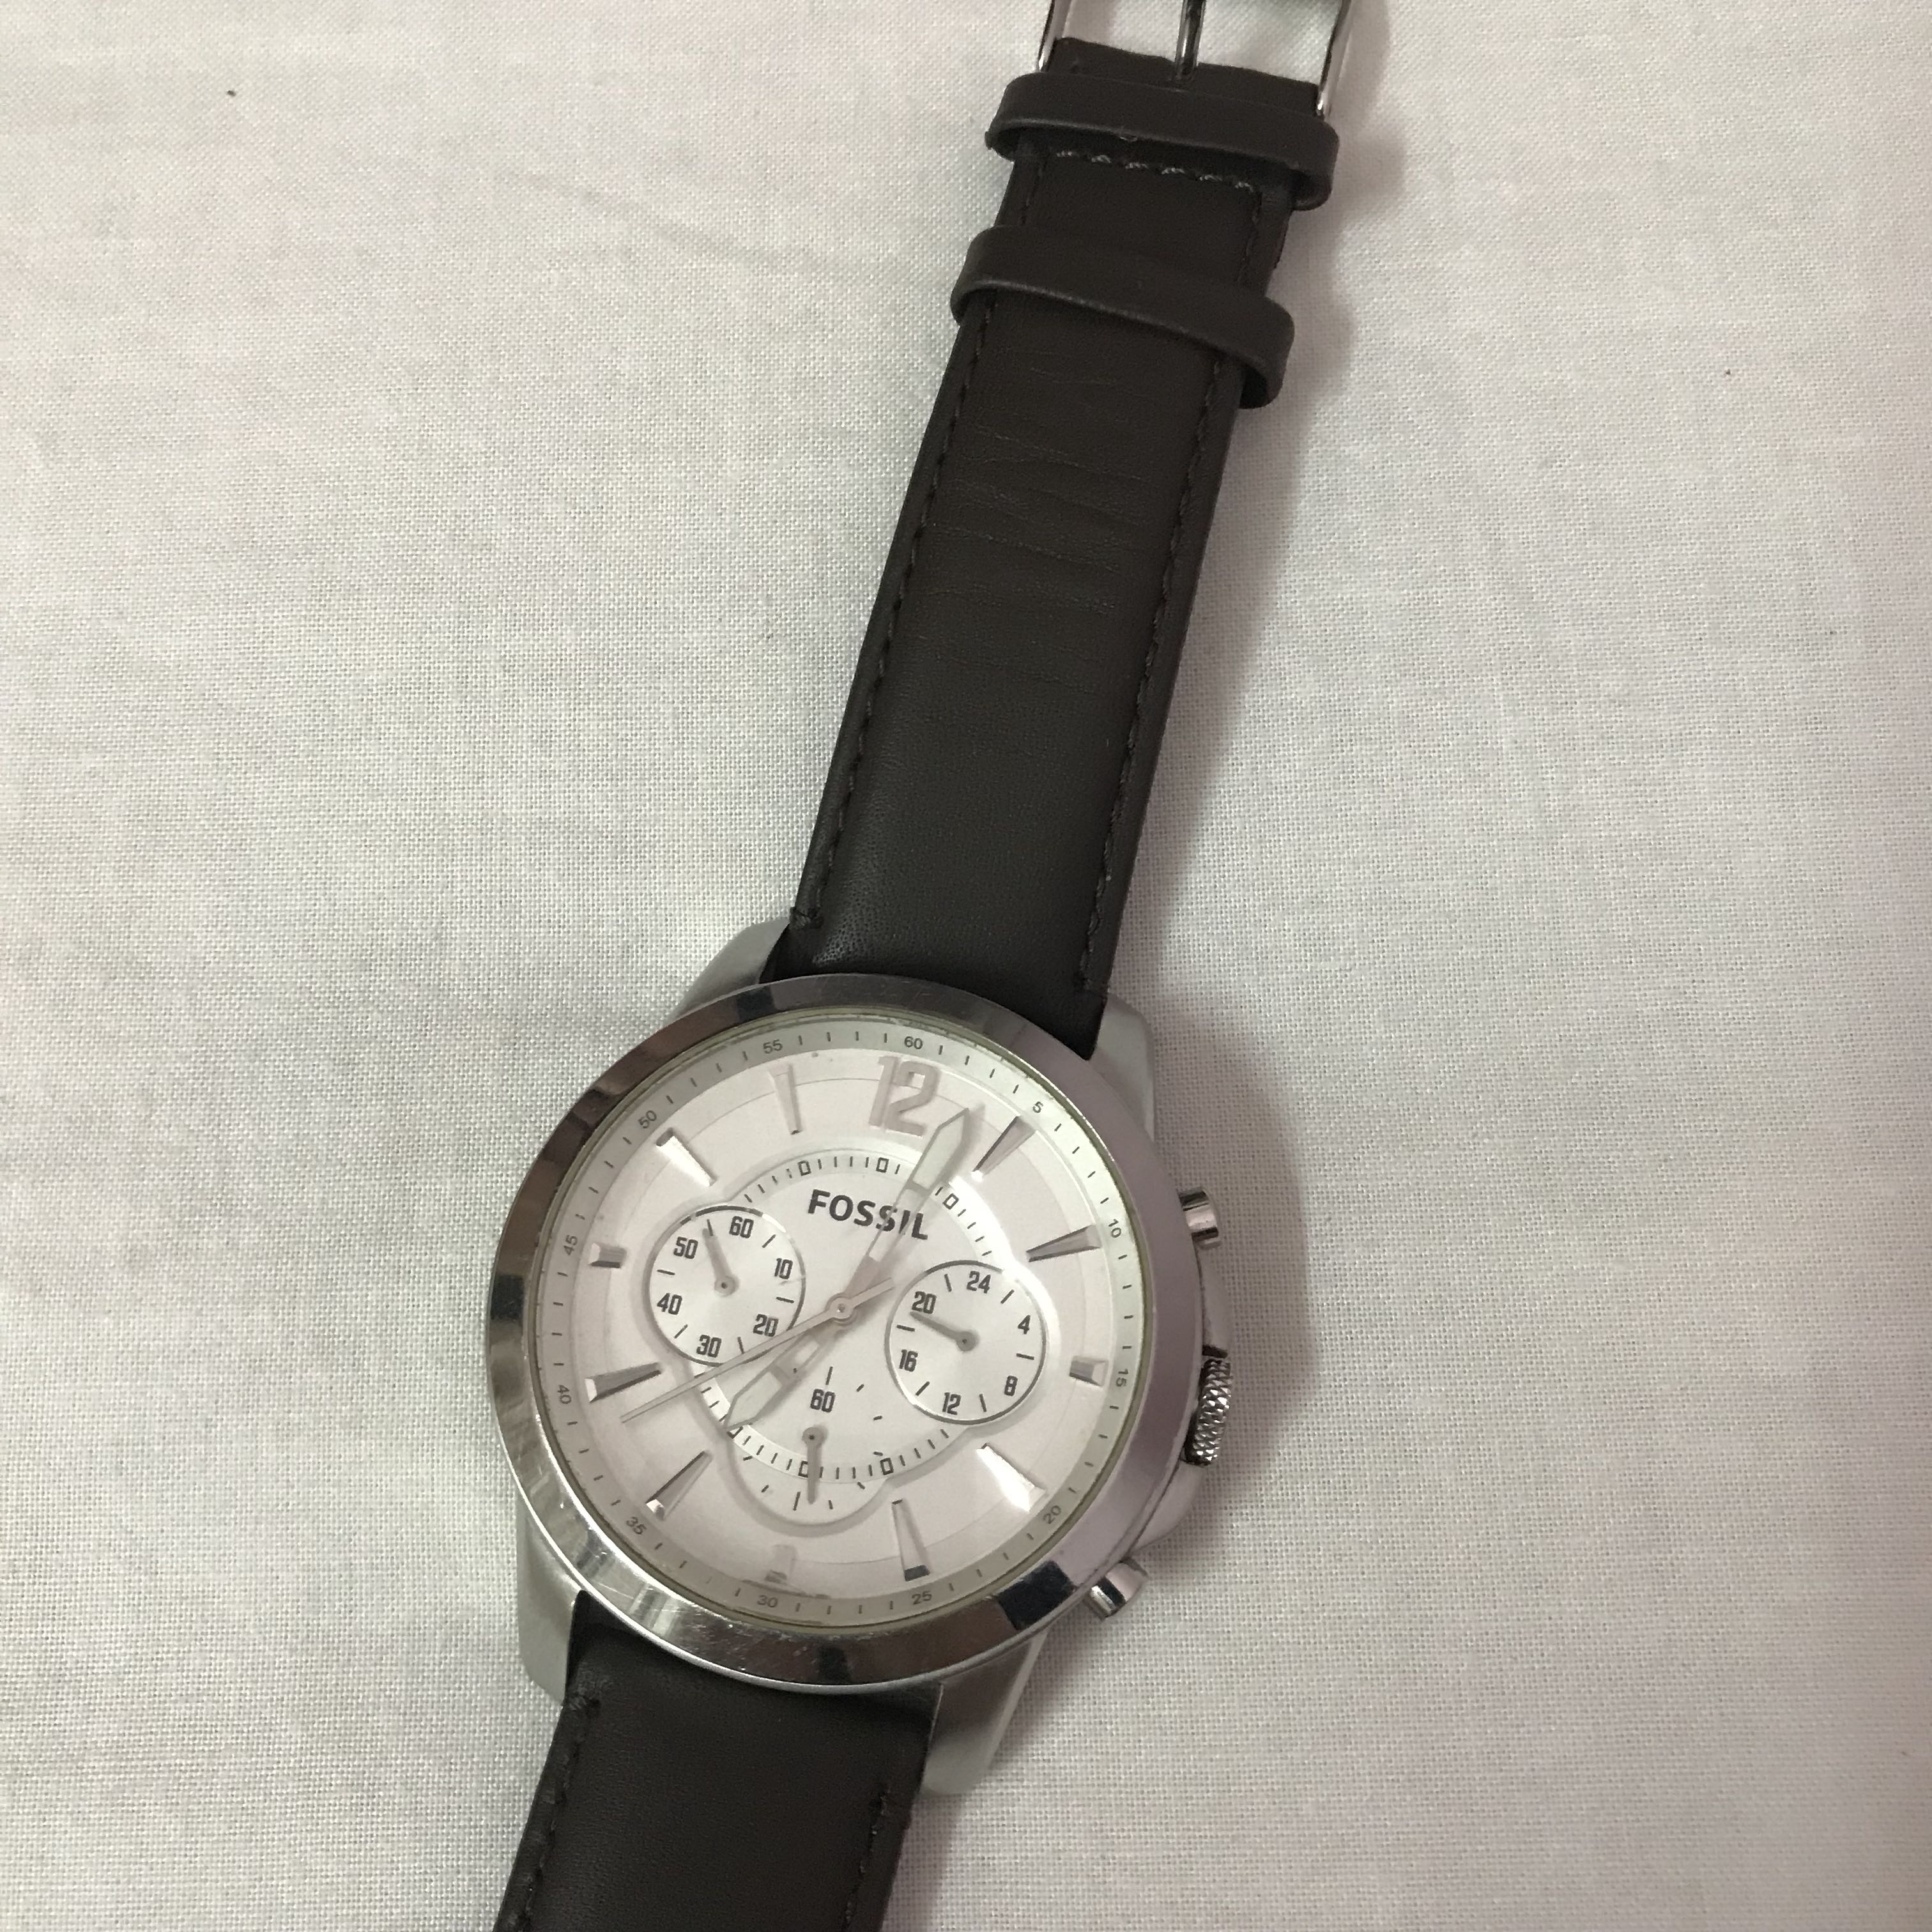 Fossil Jam Tangan Wanita Es3838 Original Boyfriend Es3913 Leather Strap Watches Pria 20 Models